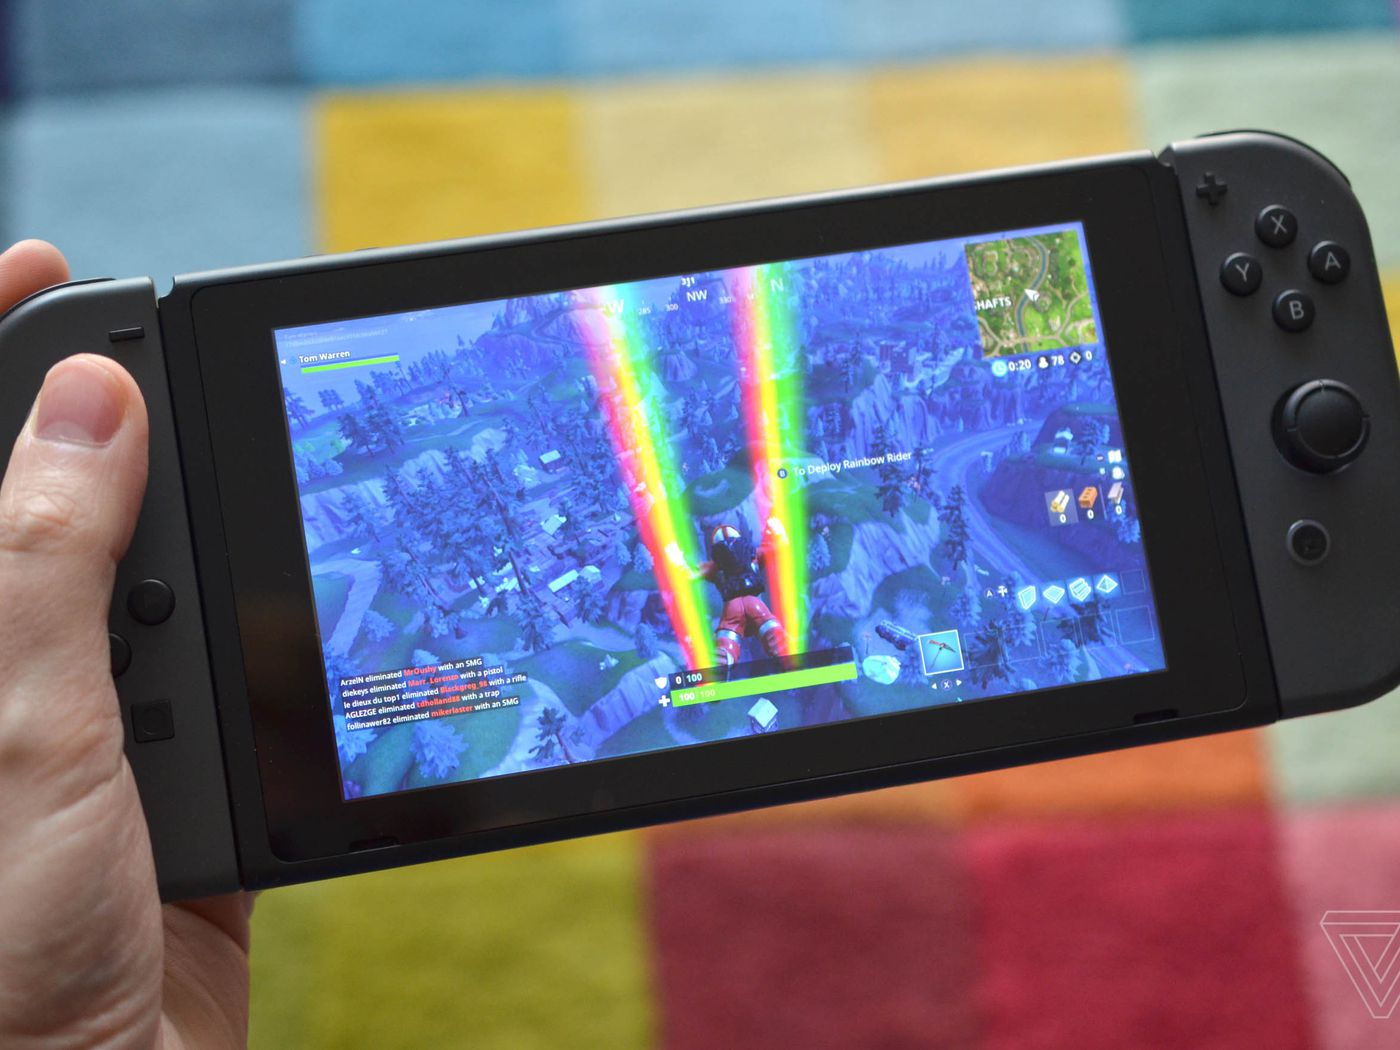 Fortnite Has Been Installed On Nearly Half Of Nintendo Switch Systems The Verge